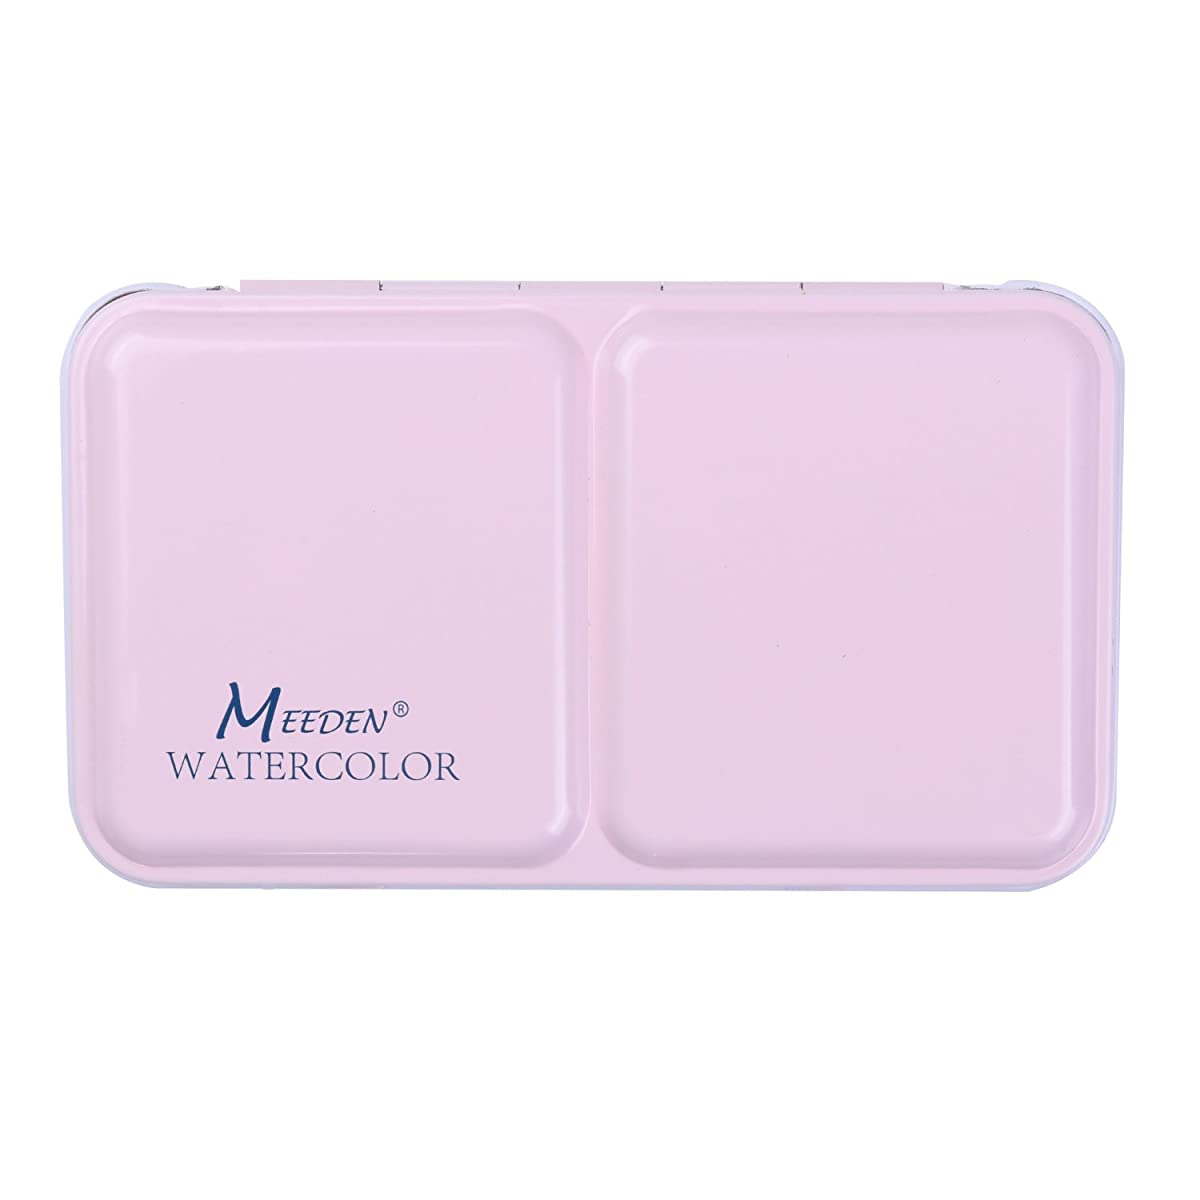 MEEDEN Empty Watercolor Tins Box Palette Paint Case, Small Pink Tin, Will Hold 12 Half Pans or 6 Full Pans